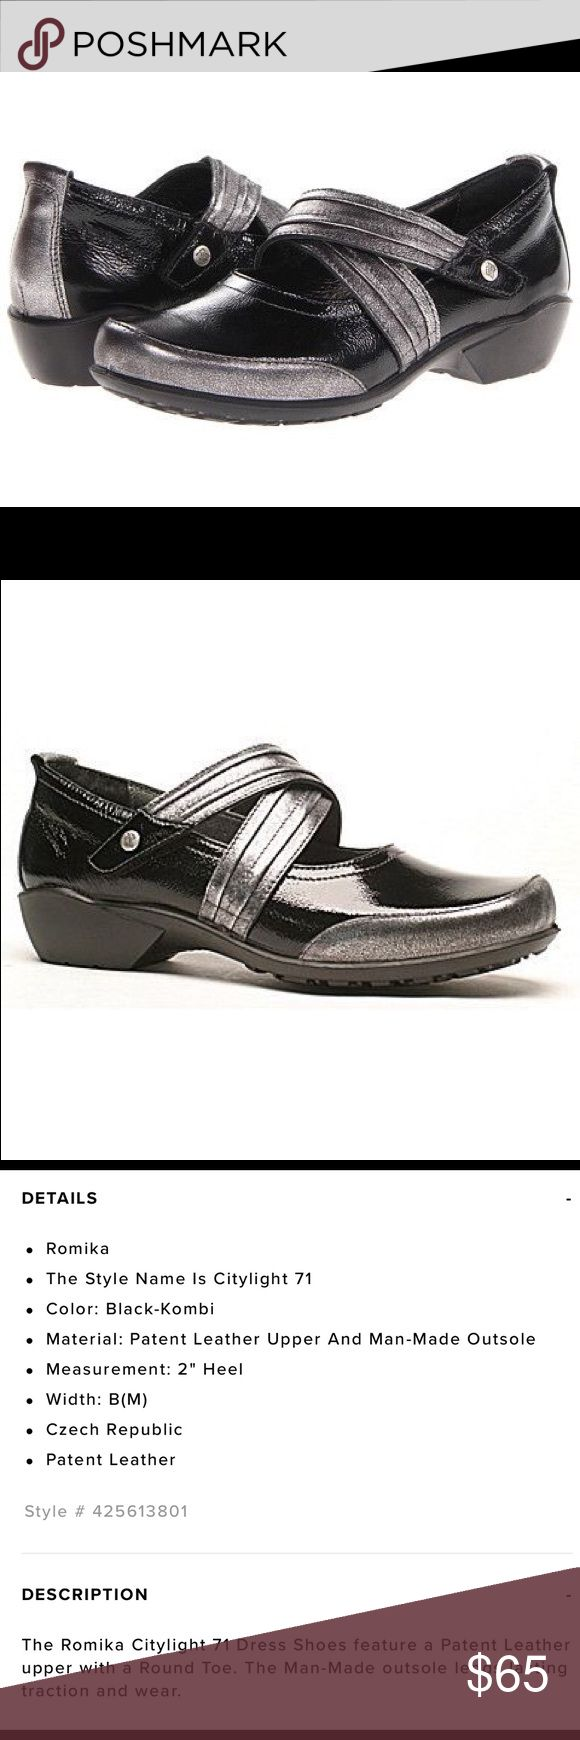 """Romika Citylight 71 Mary Jane Black-Kombi NIB This is just a gorgeous and super comfortable shoe from Romika!    🎄Features a patent leather upper in black and silver with a Velcro strap for a secure fit.   ⭐️Mary Jane Round Toe Styling.   🎄2"""" heel  🎄New in box, this pair has been tried on but never worn.  🎄A comfortable shoe, perfect for holiday dressing. Romika Shoes Wedges"""